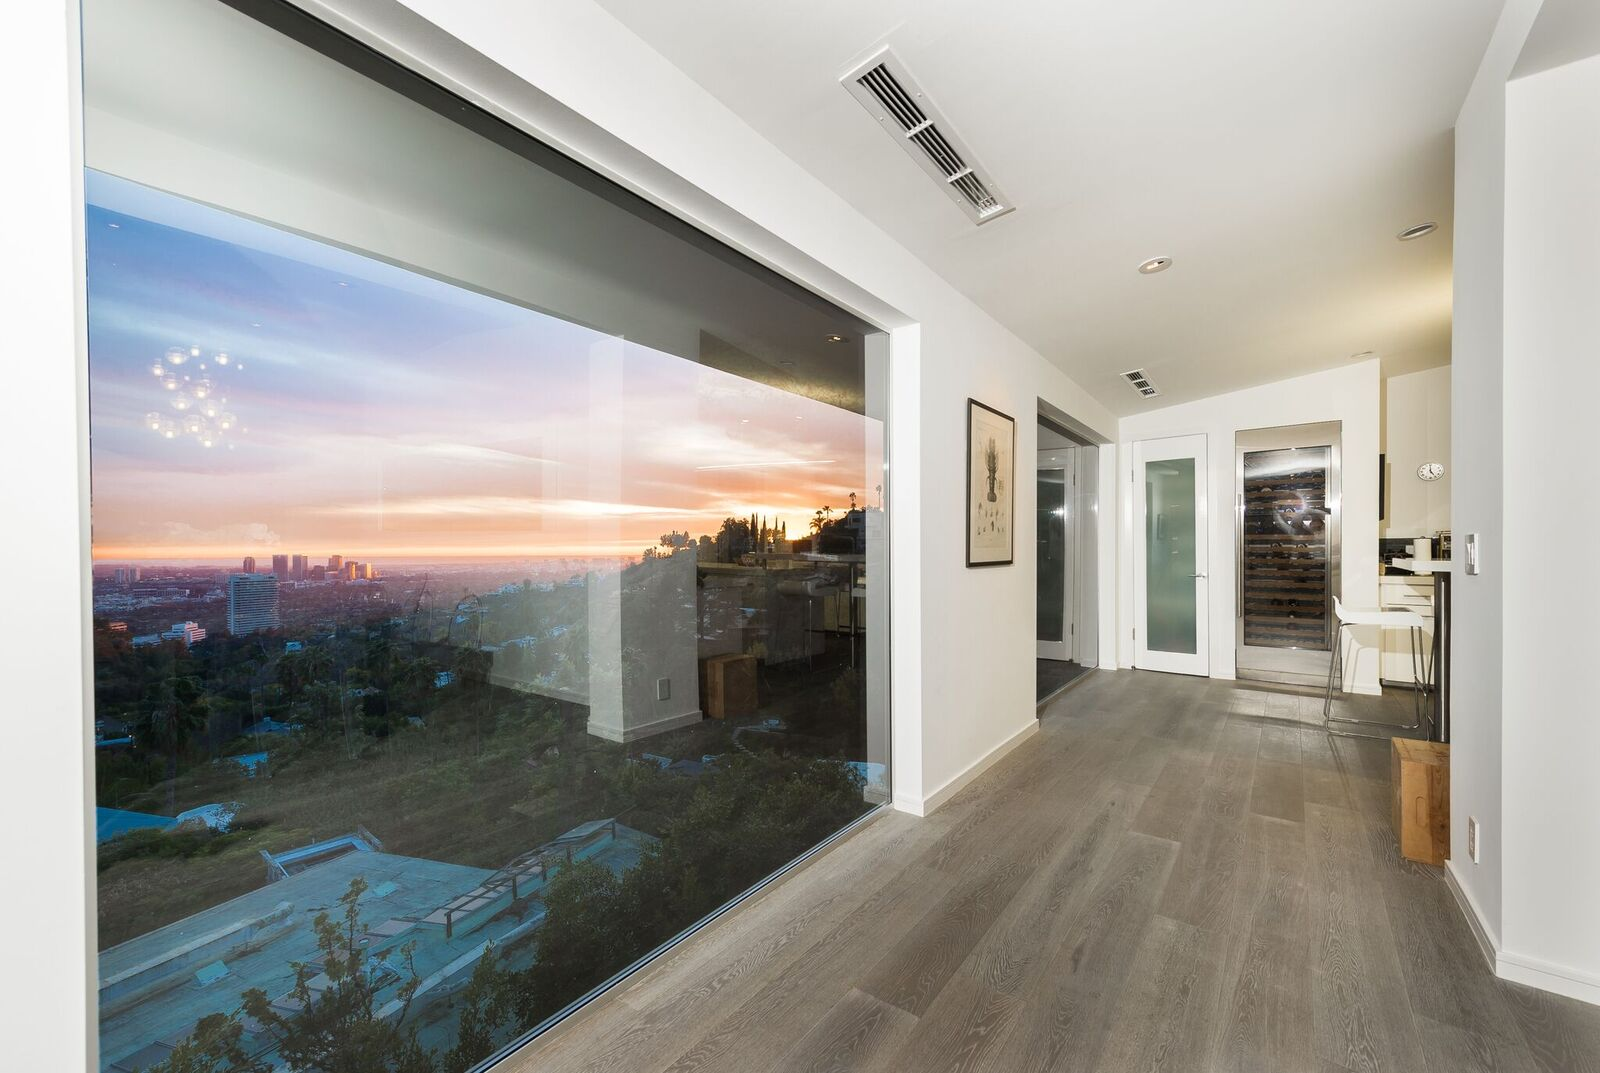 North Doheny Drive Los Angeles Sherwood Systems Inc